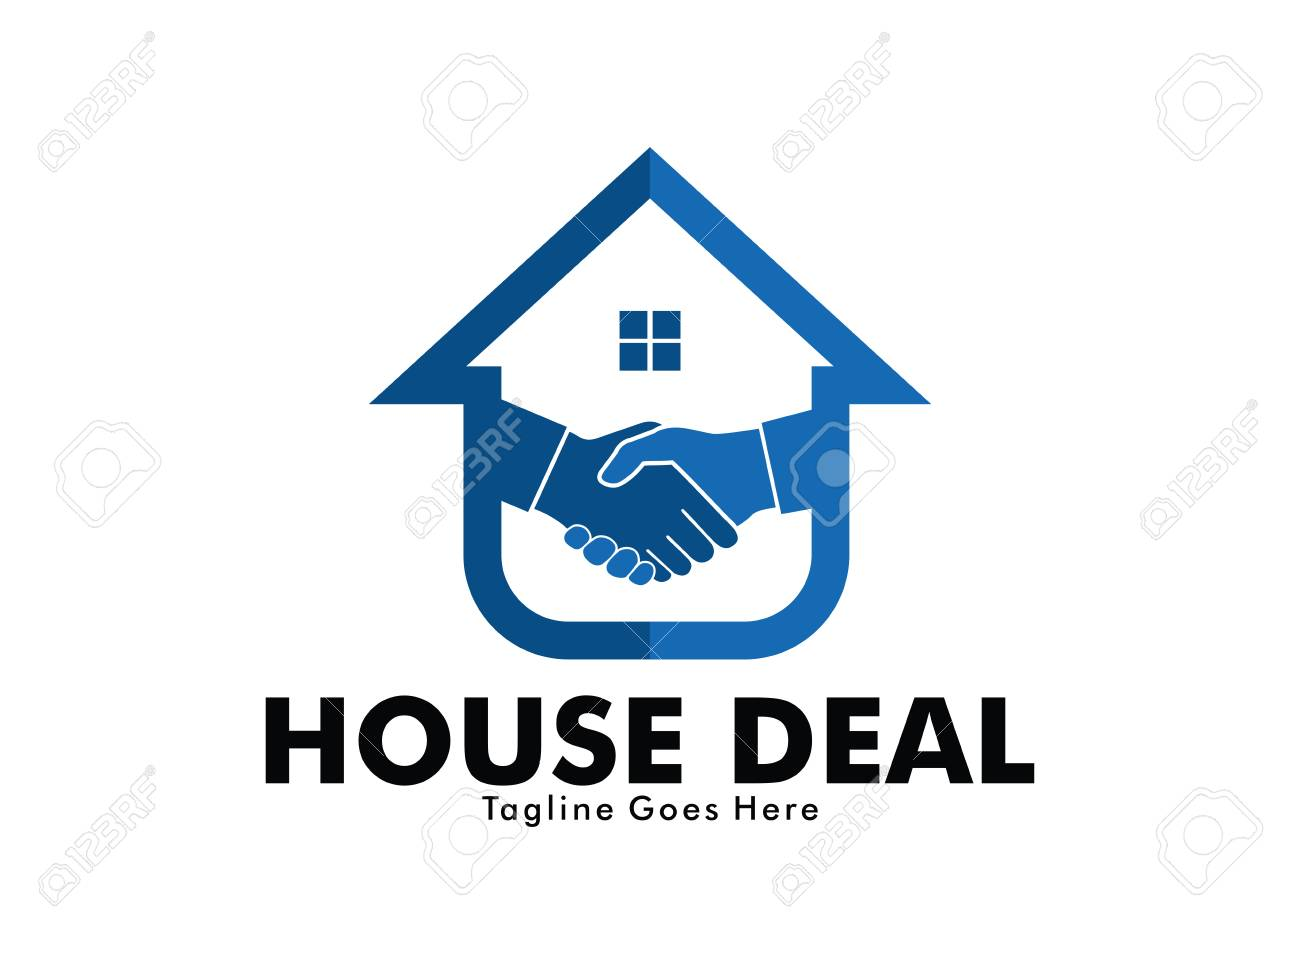 house and property dealer with handshake marketing vector logo design of mortgage, home stay project - 95728051